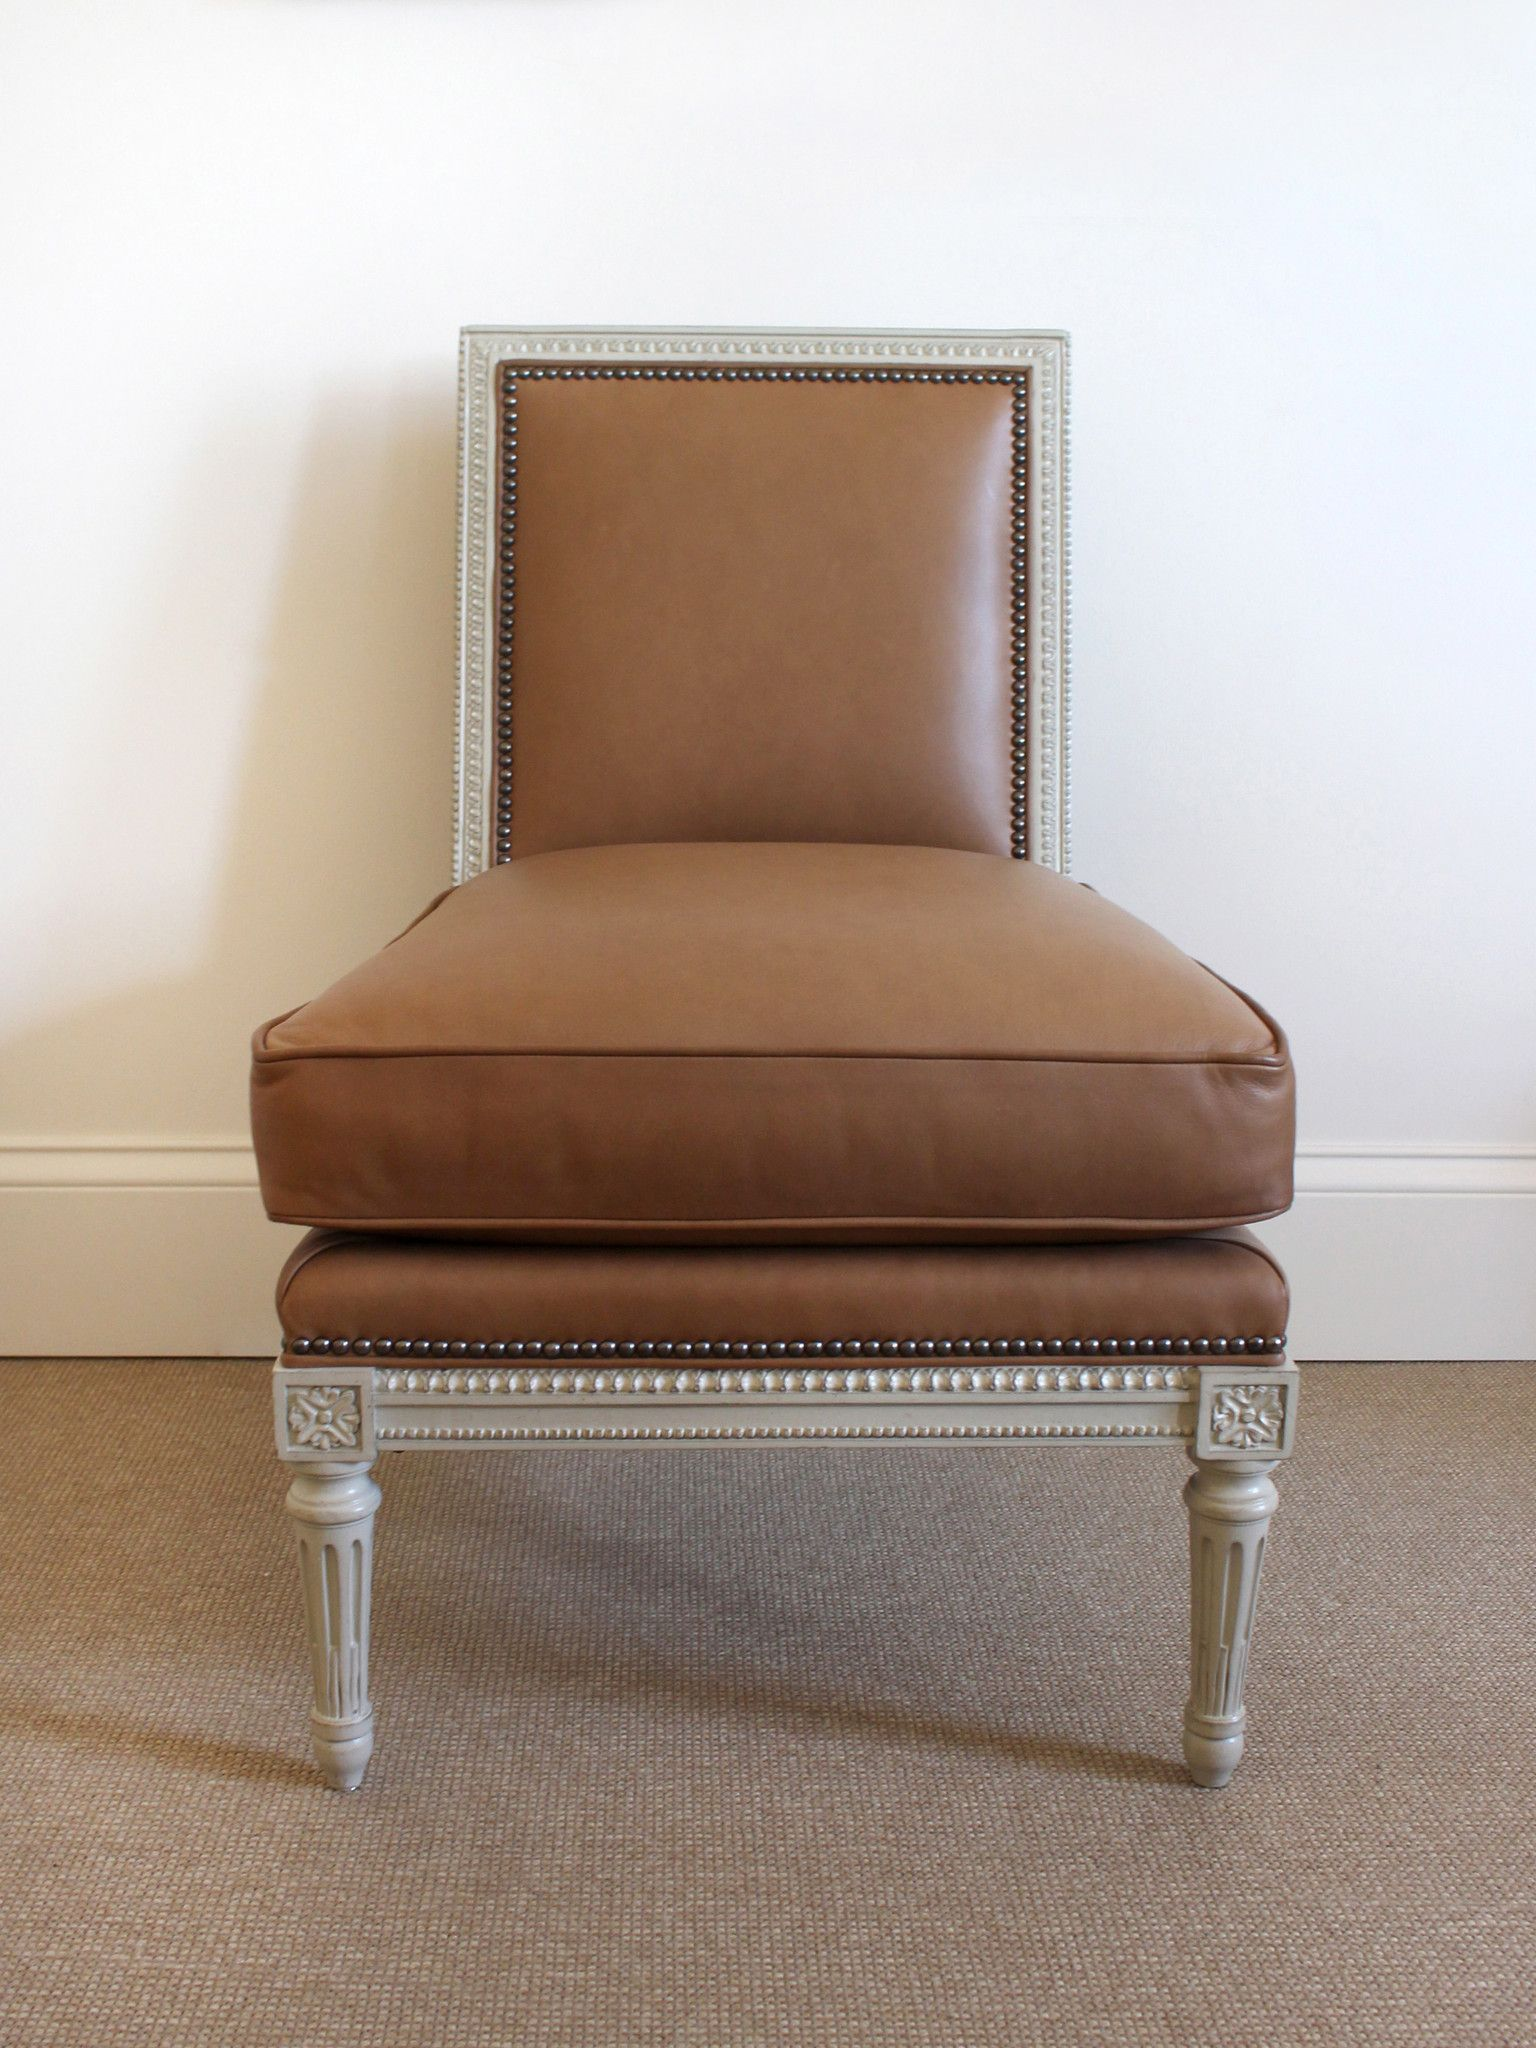 Ansley Slipper Chair Chair, Hickory chair, Furniture chair